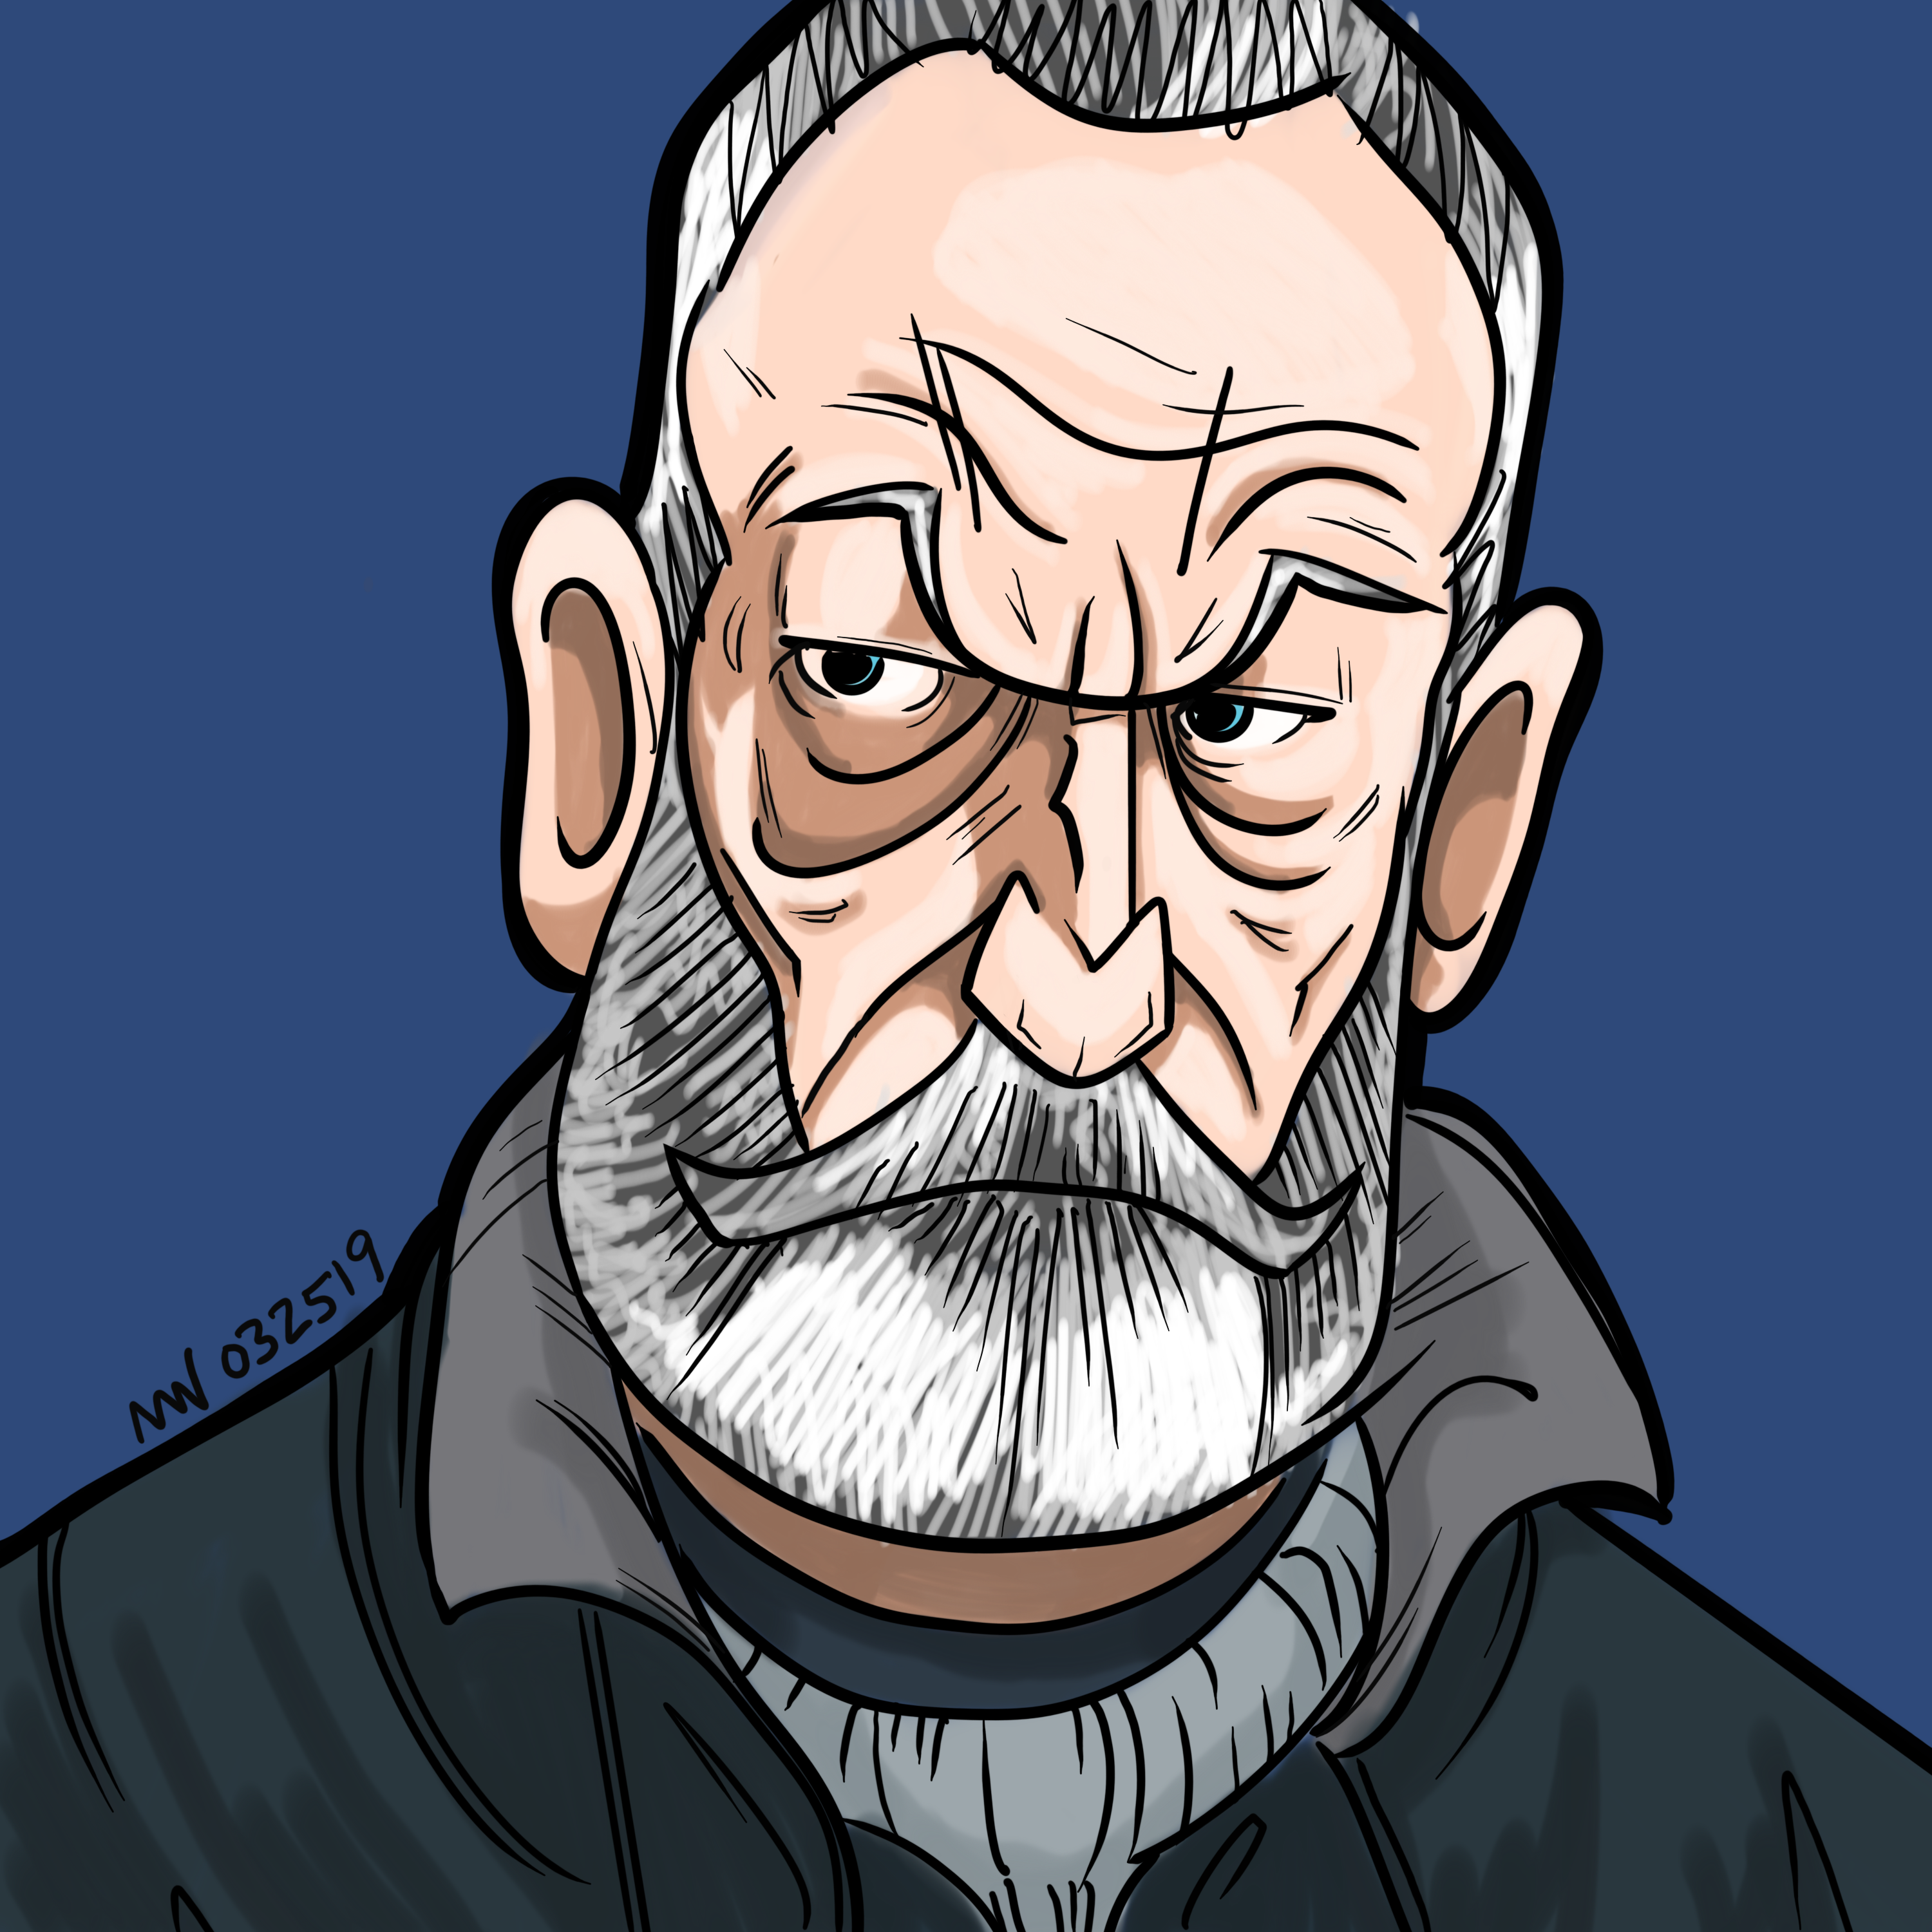 Game of Thrones Davos Seaworth